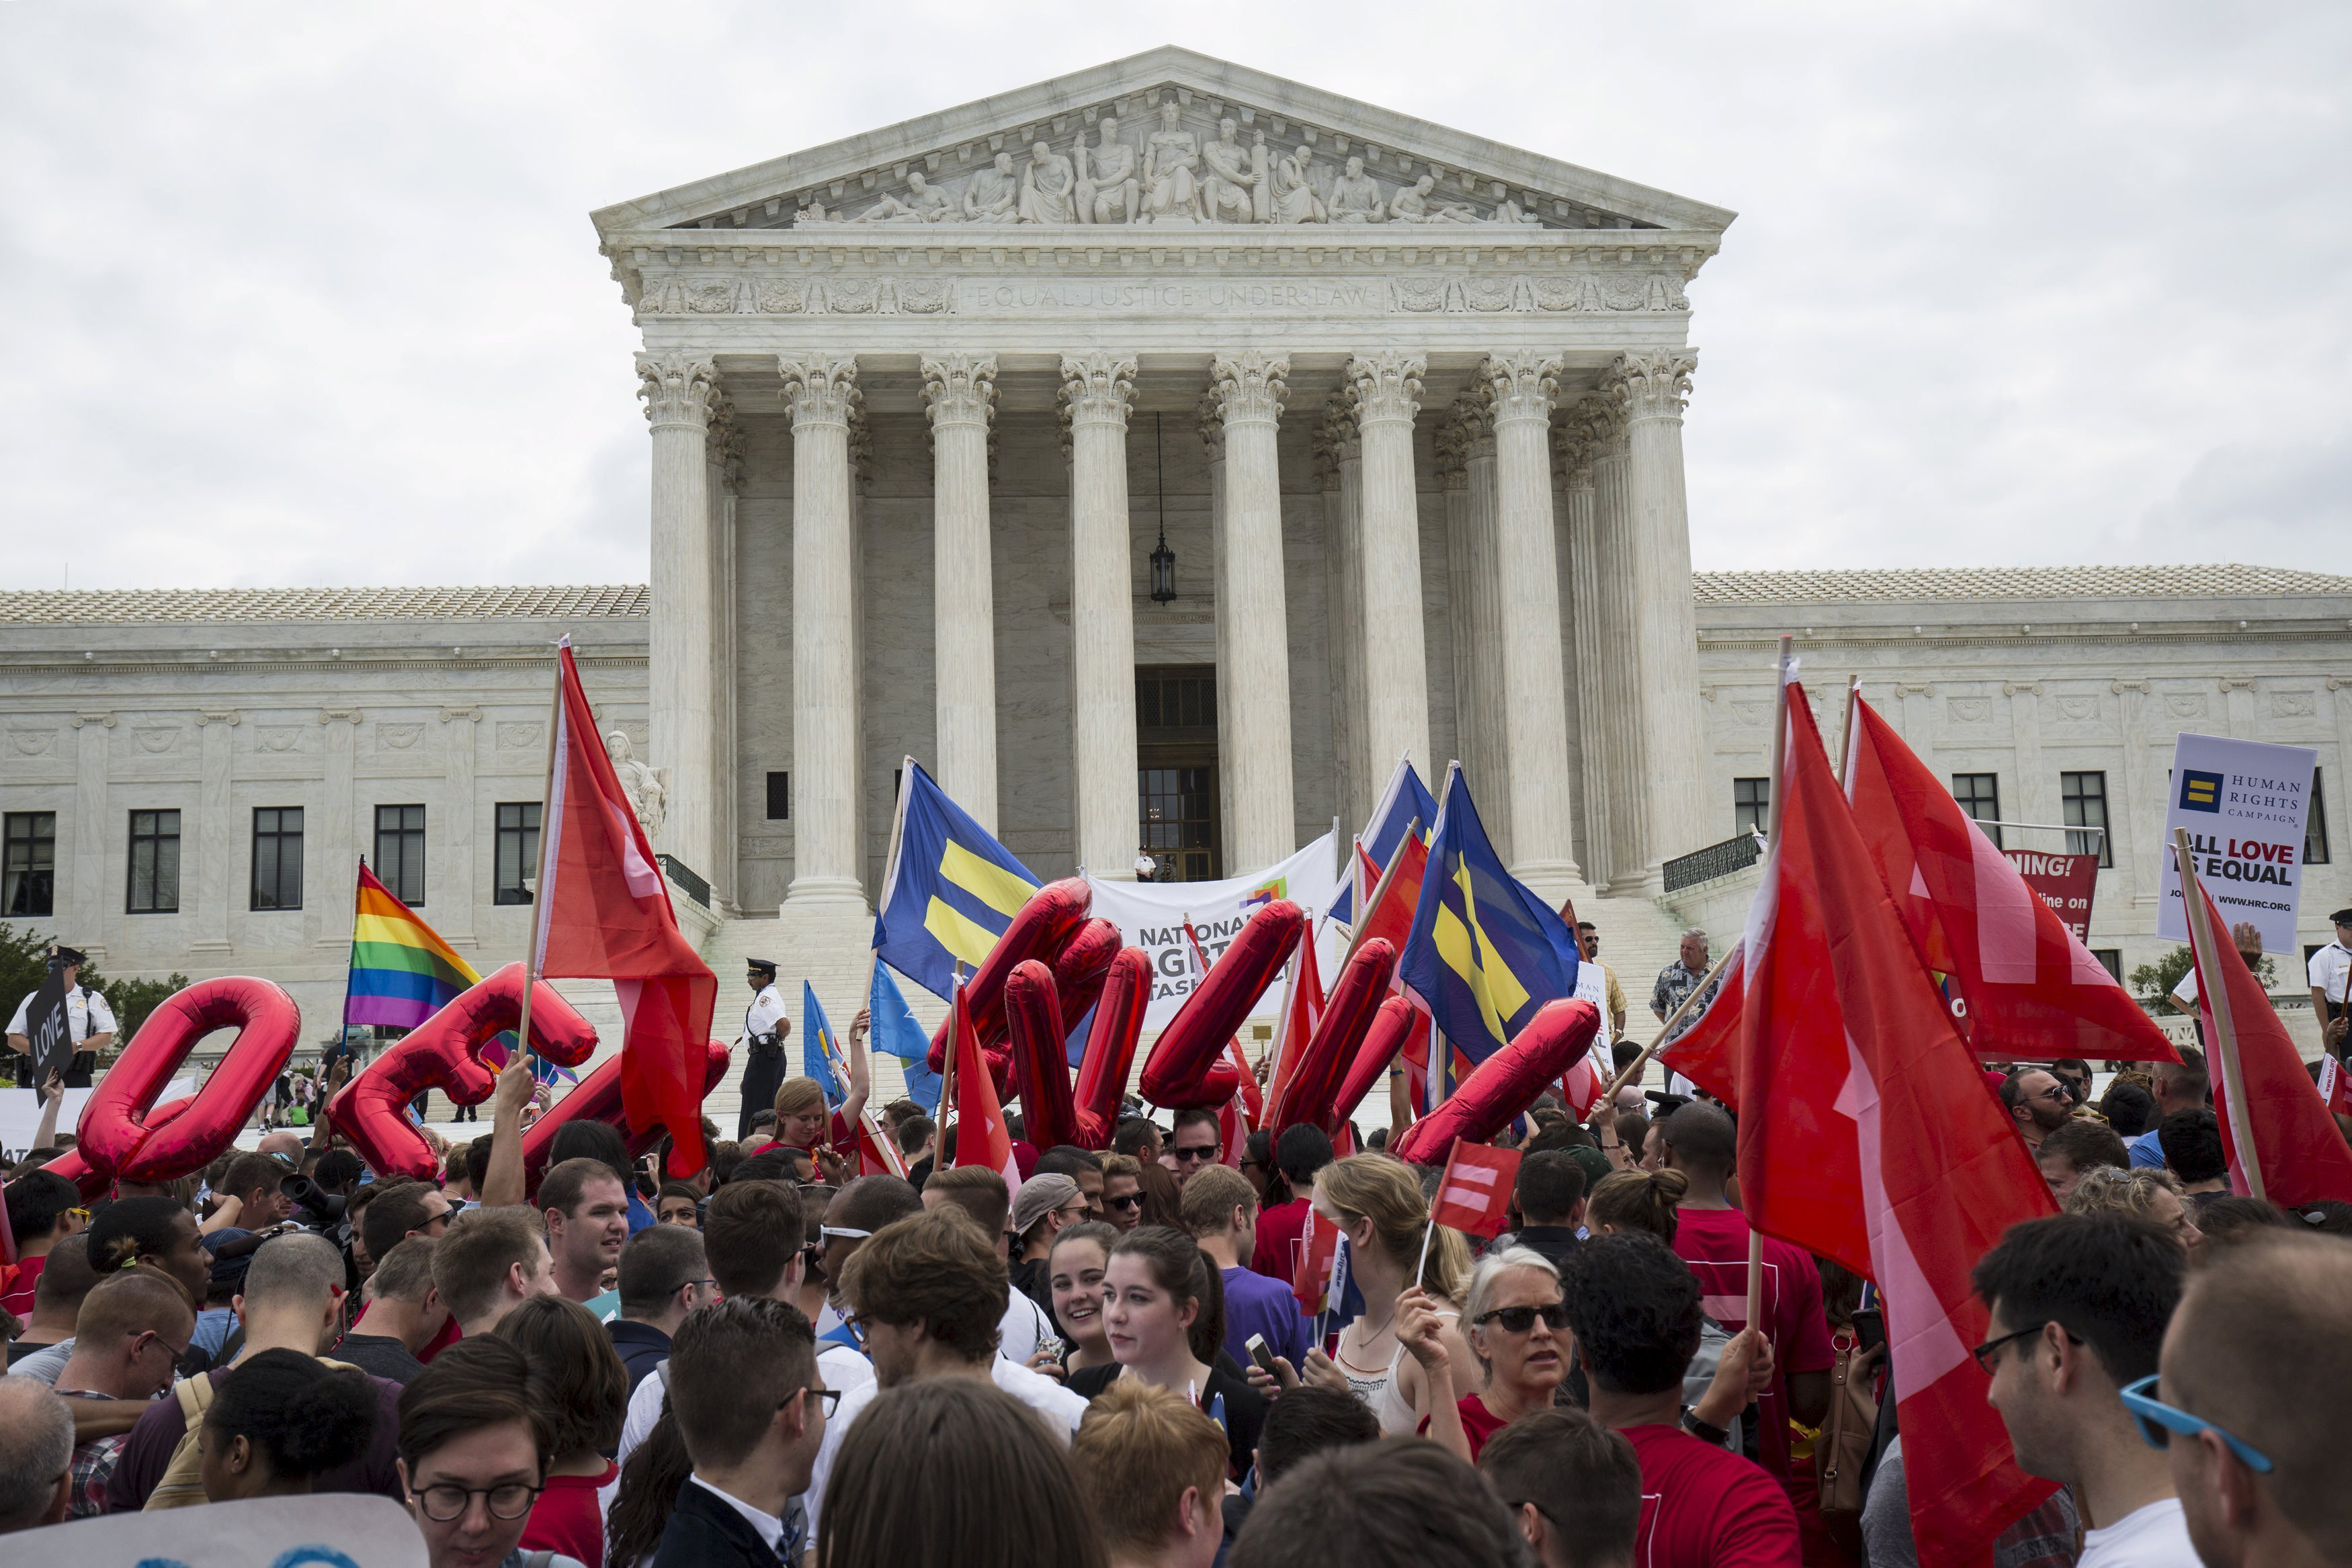 Supporters of gay marriage rally after the U.S. Supreme Court ruled on Friday that the U.S. Constitution provides same-sex couples the right to marry at the Supreme Court in Washington June 26, 2015.